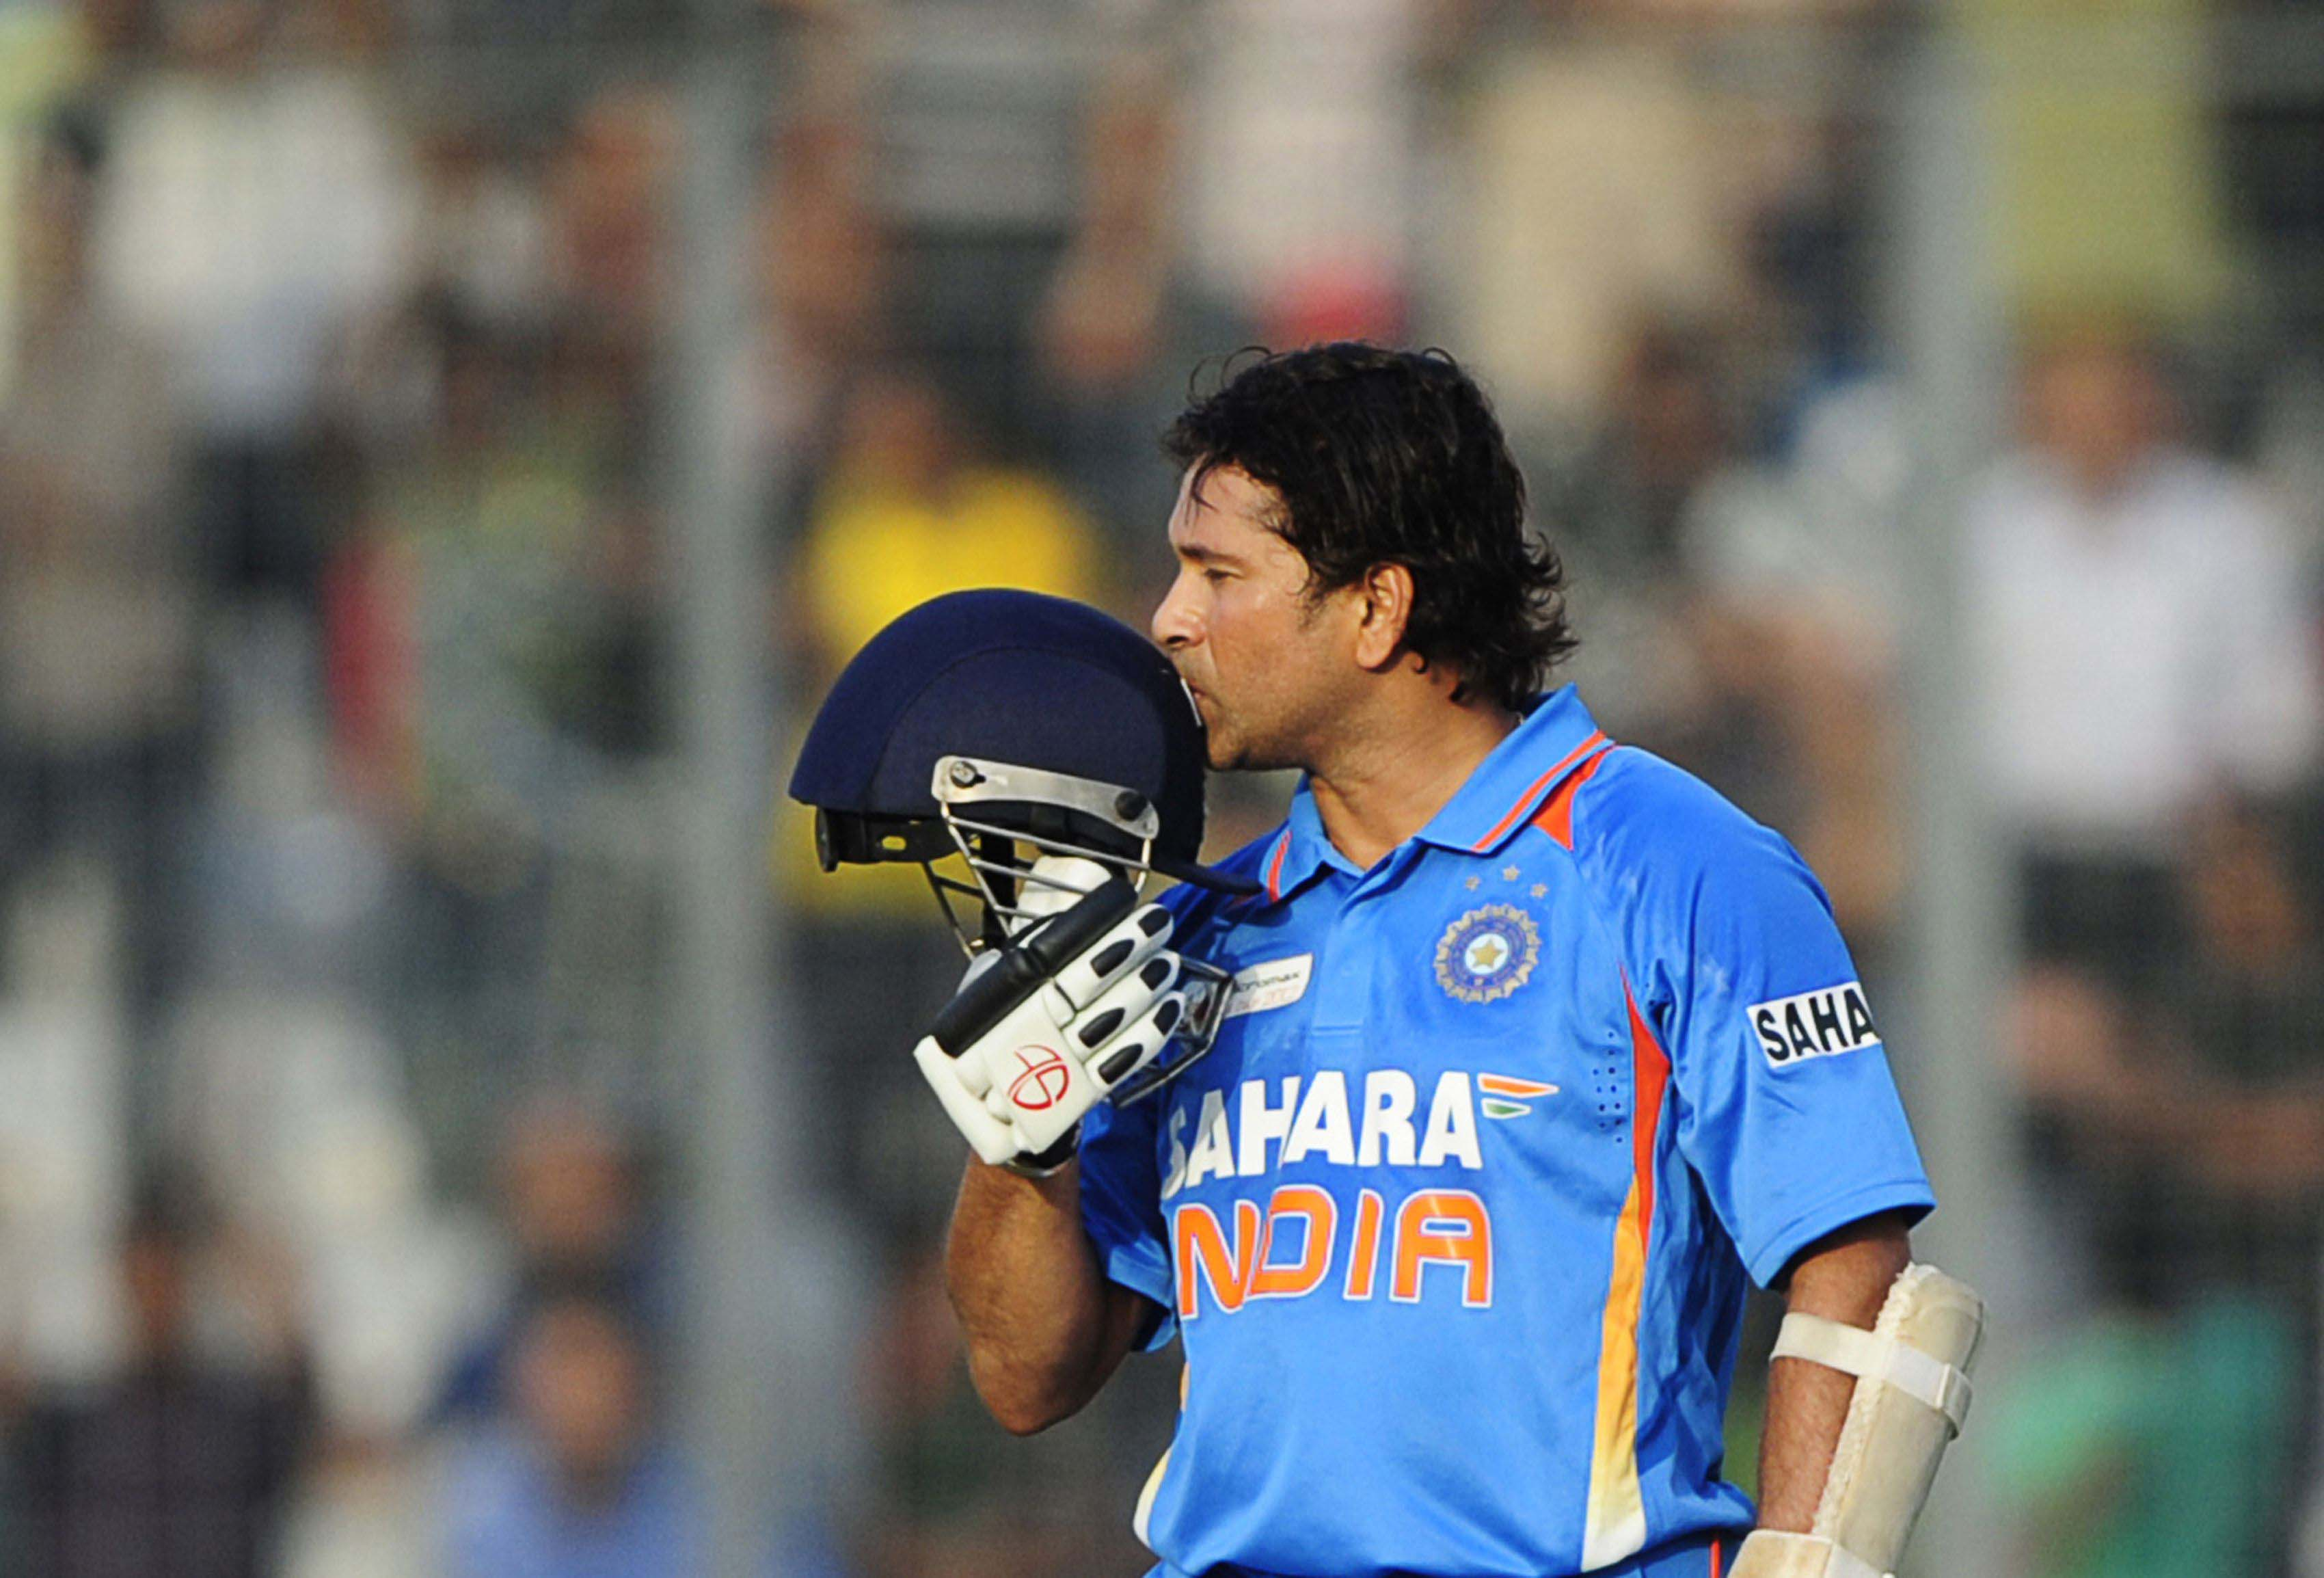 beautiful sachin tendulkar giving kiss to helmet for putting century in one day cute pose background free hd mobile desktop wallpaper